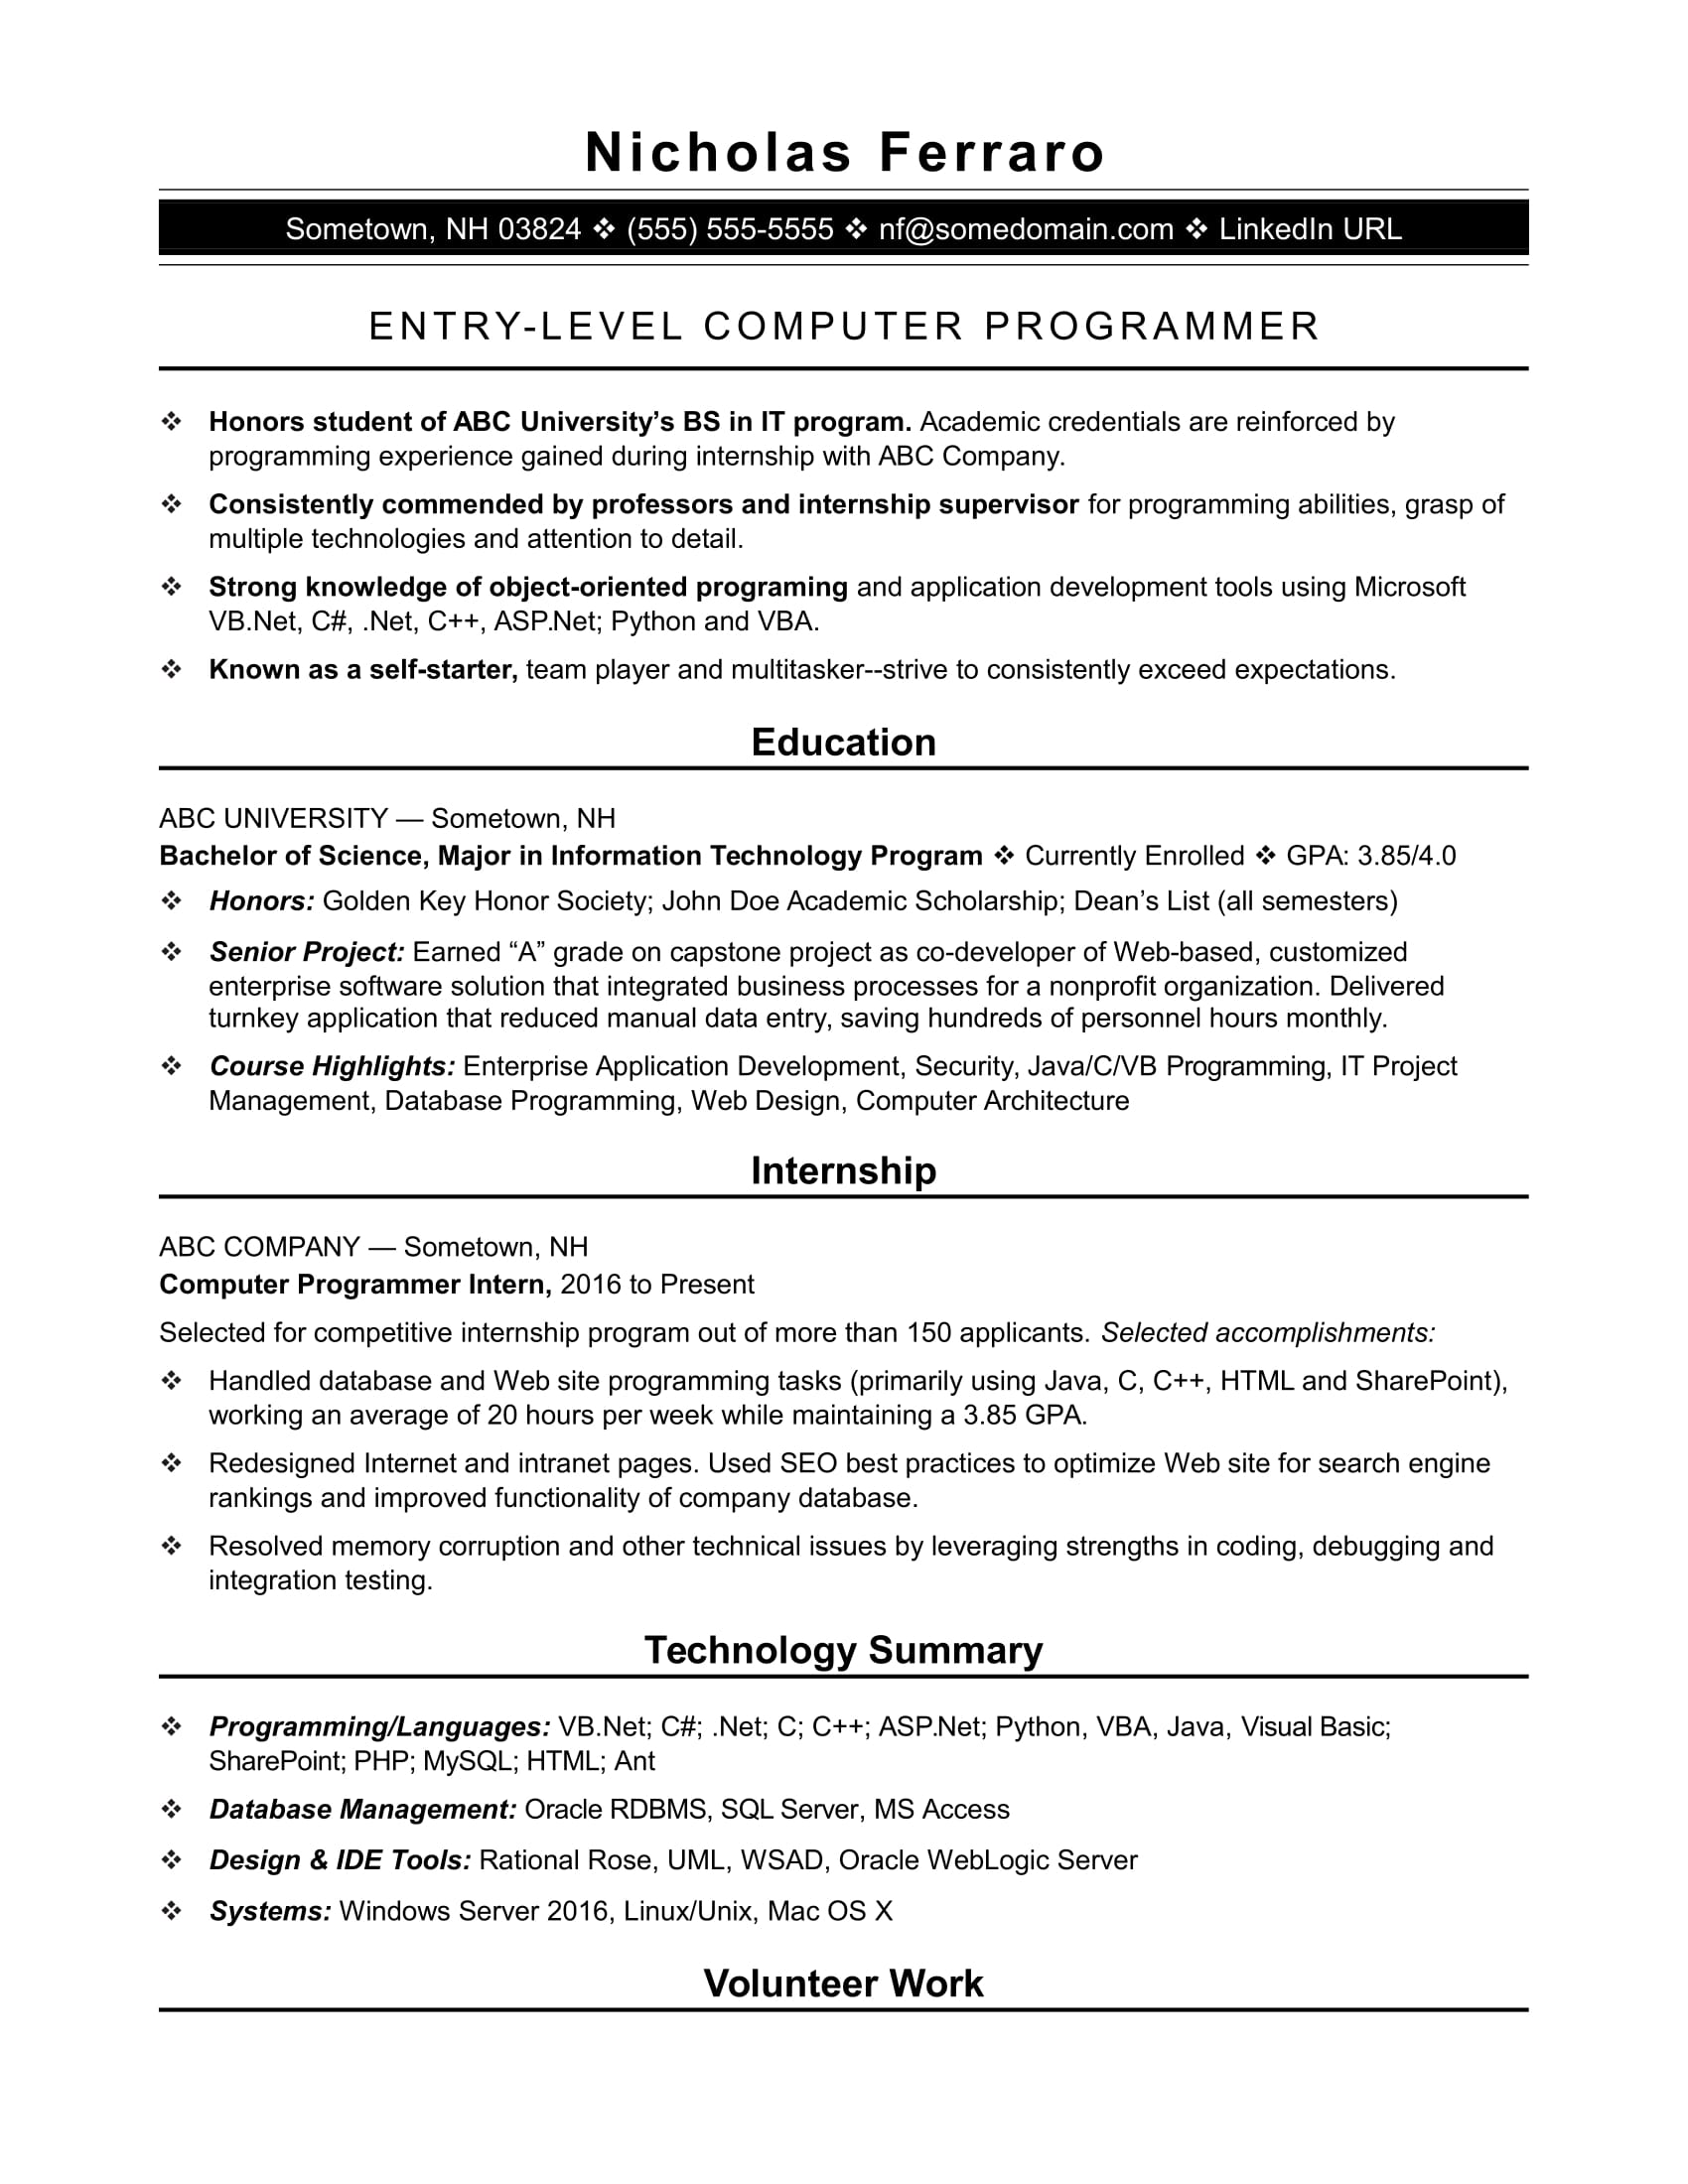 sample resume for an entry level computer programmer monster best programming projects Resume Best Programming Projects For Resume